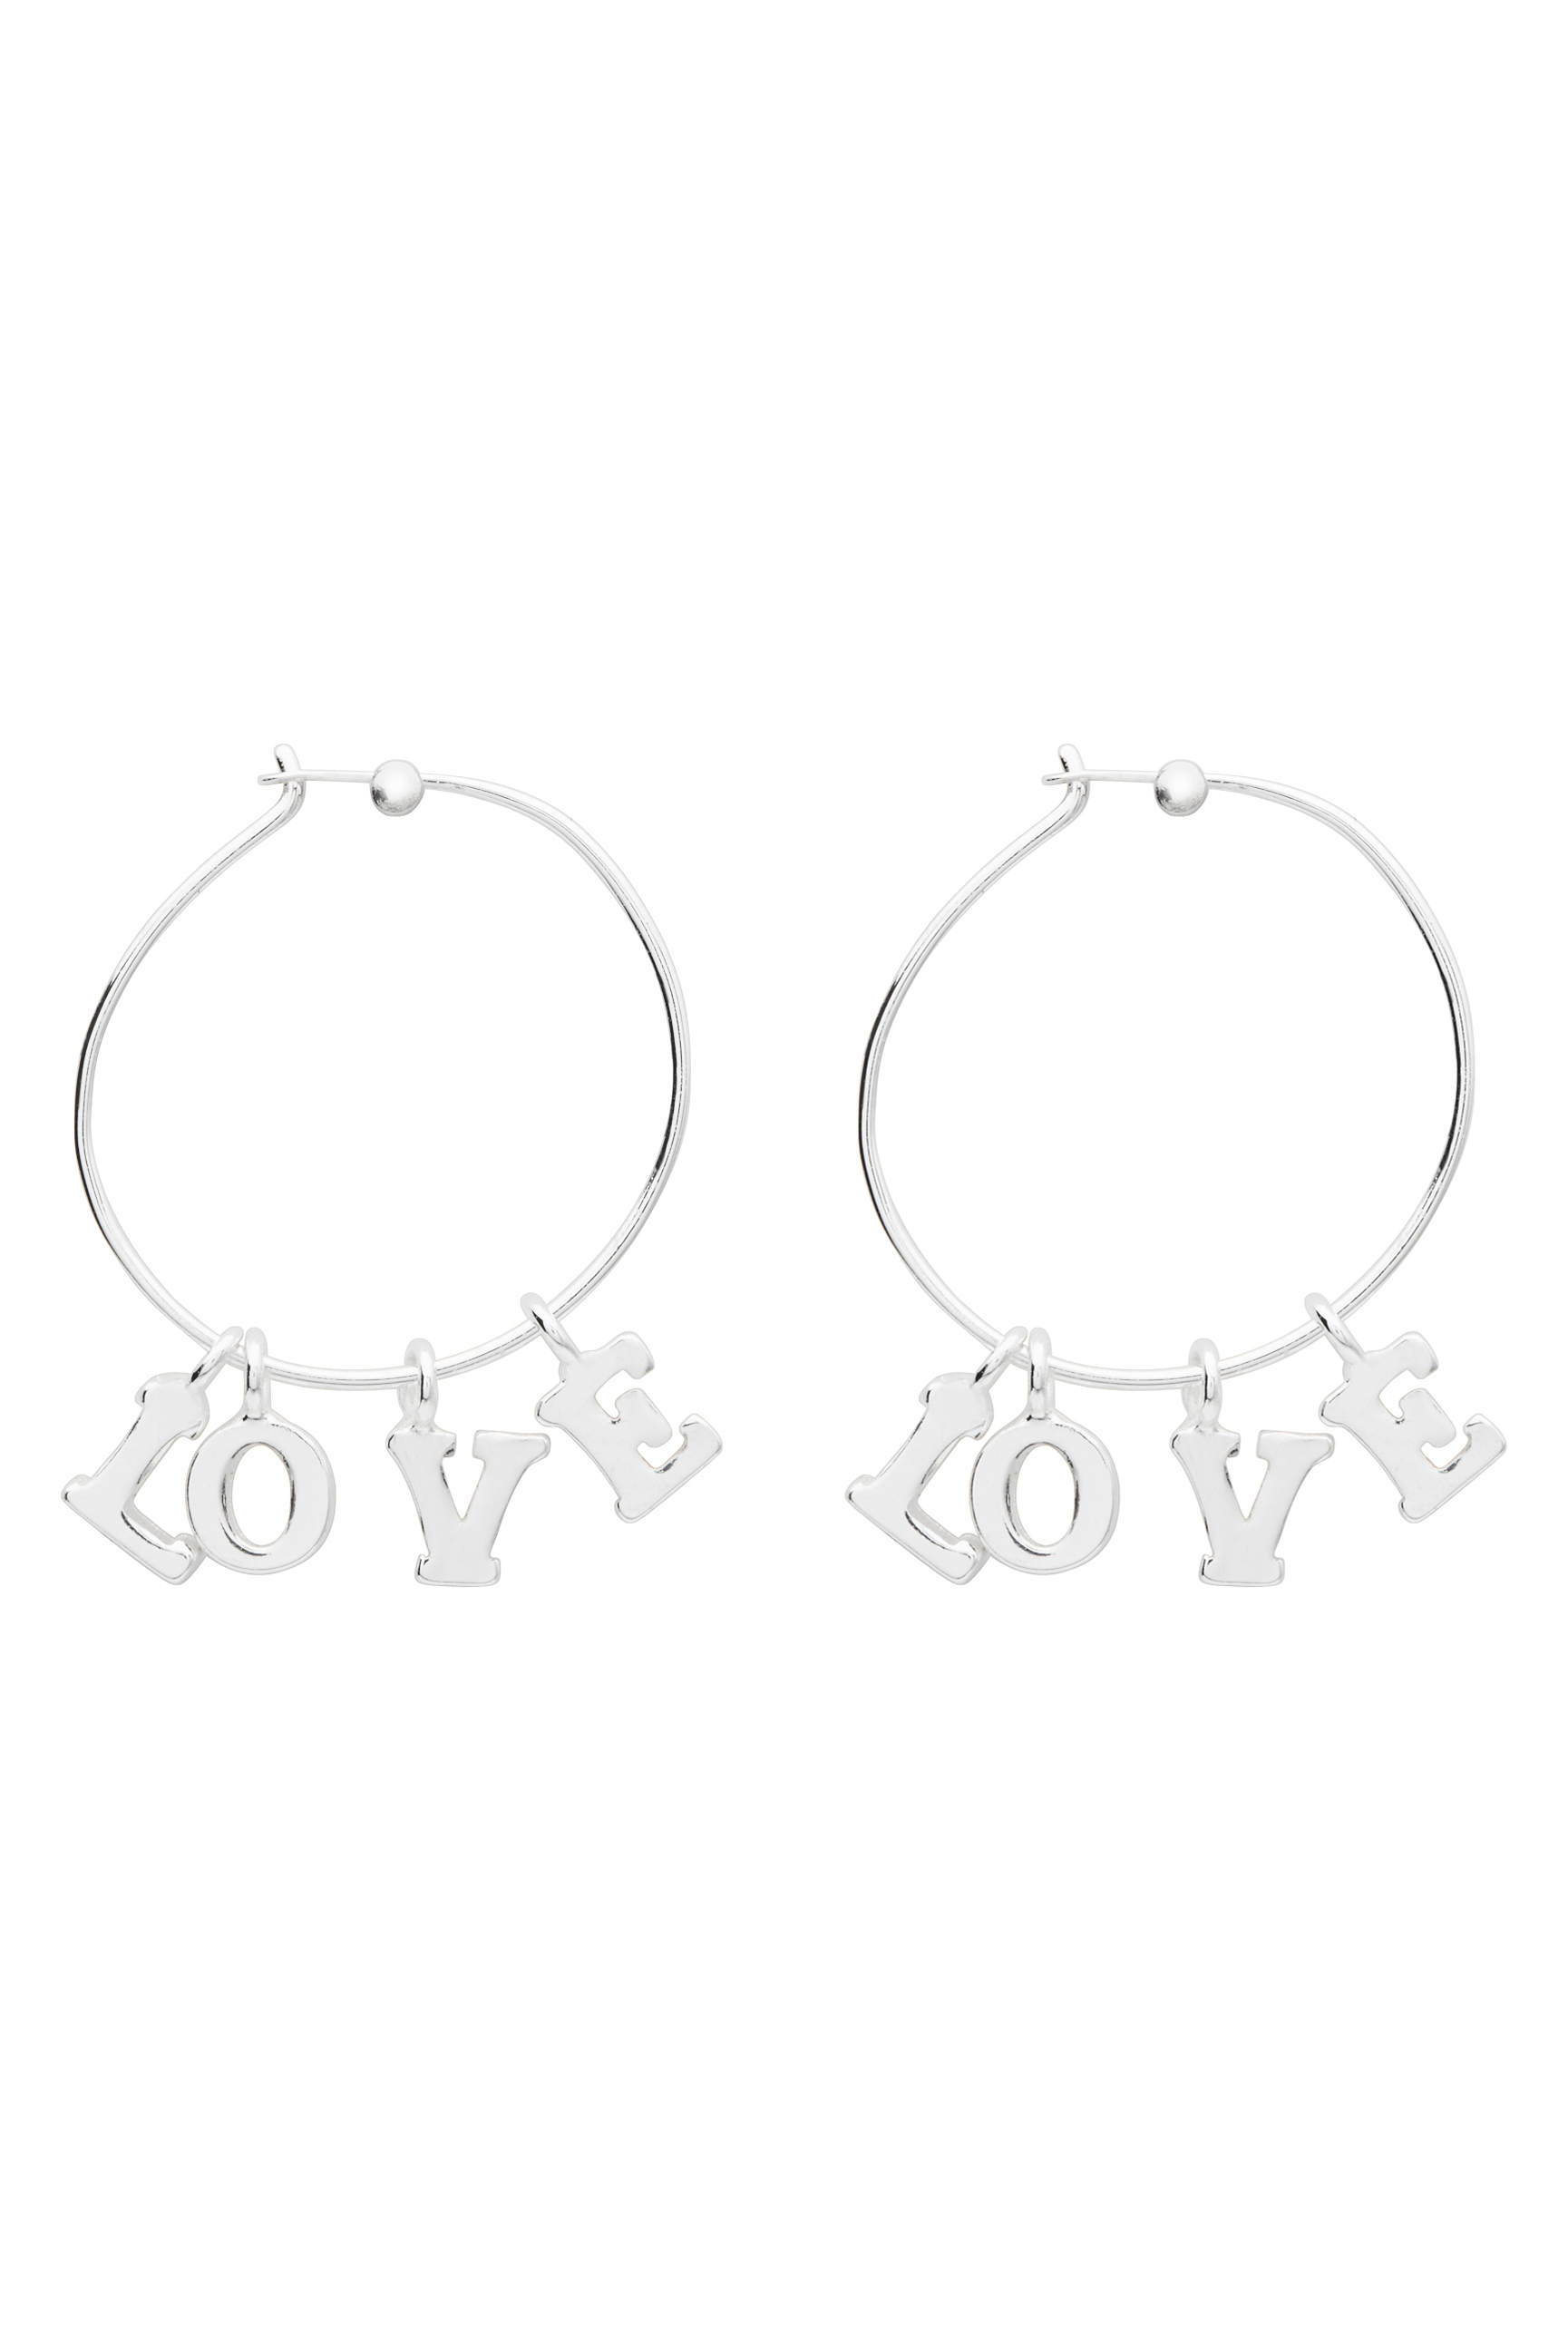 60209572_Witchery OCRF Love Earrings, RRP$29.90